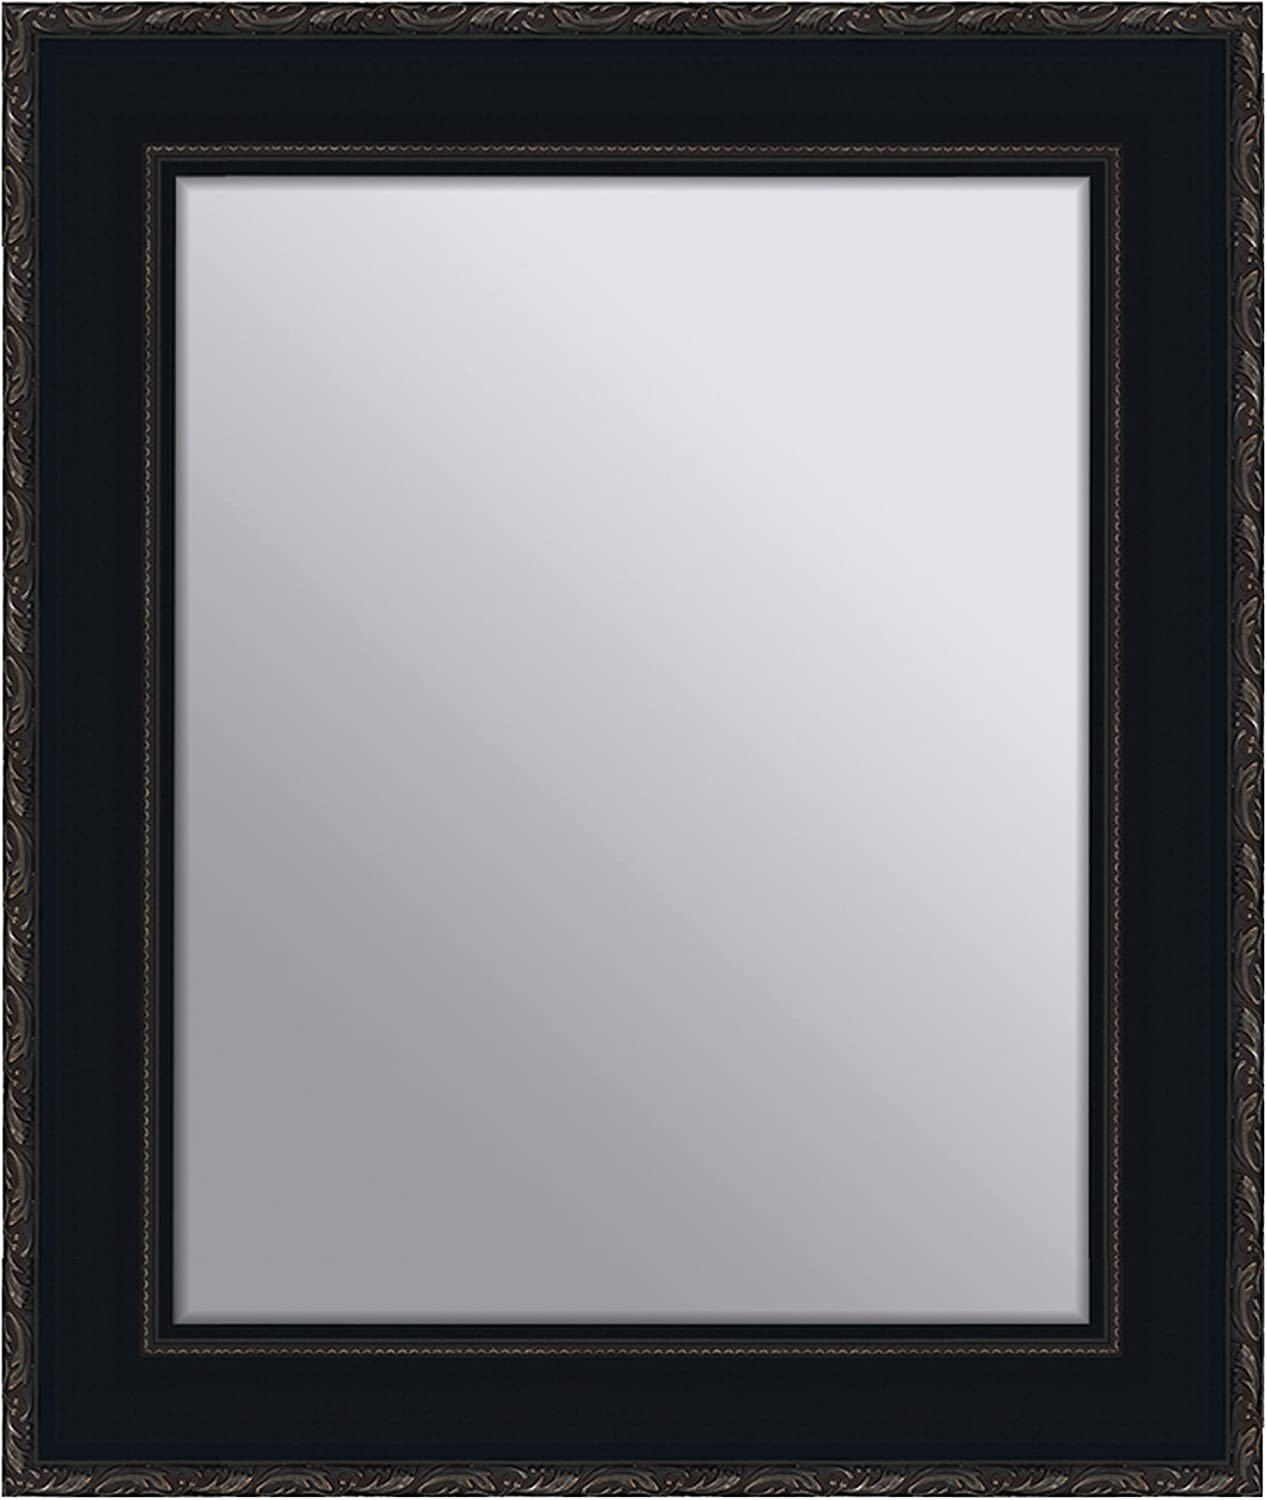 Yosemite Home Decor YMHF981516 Flower Finished Frame Mirror, Black and Antique Silver